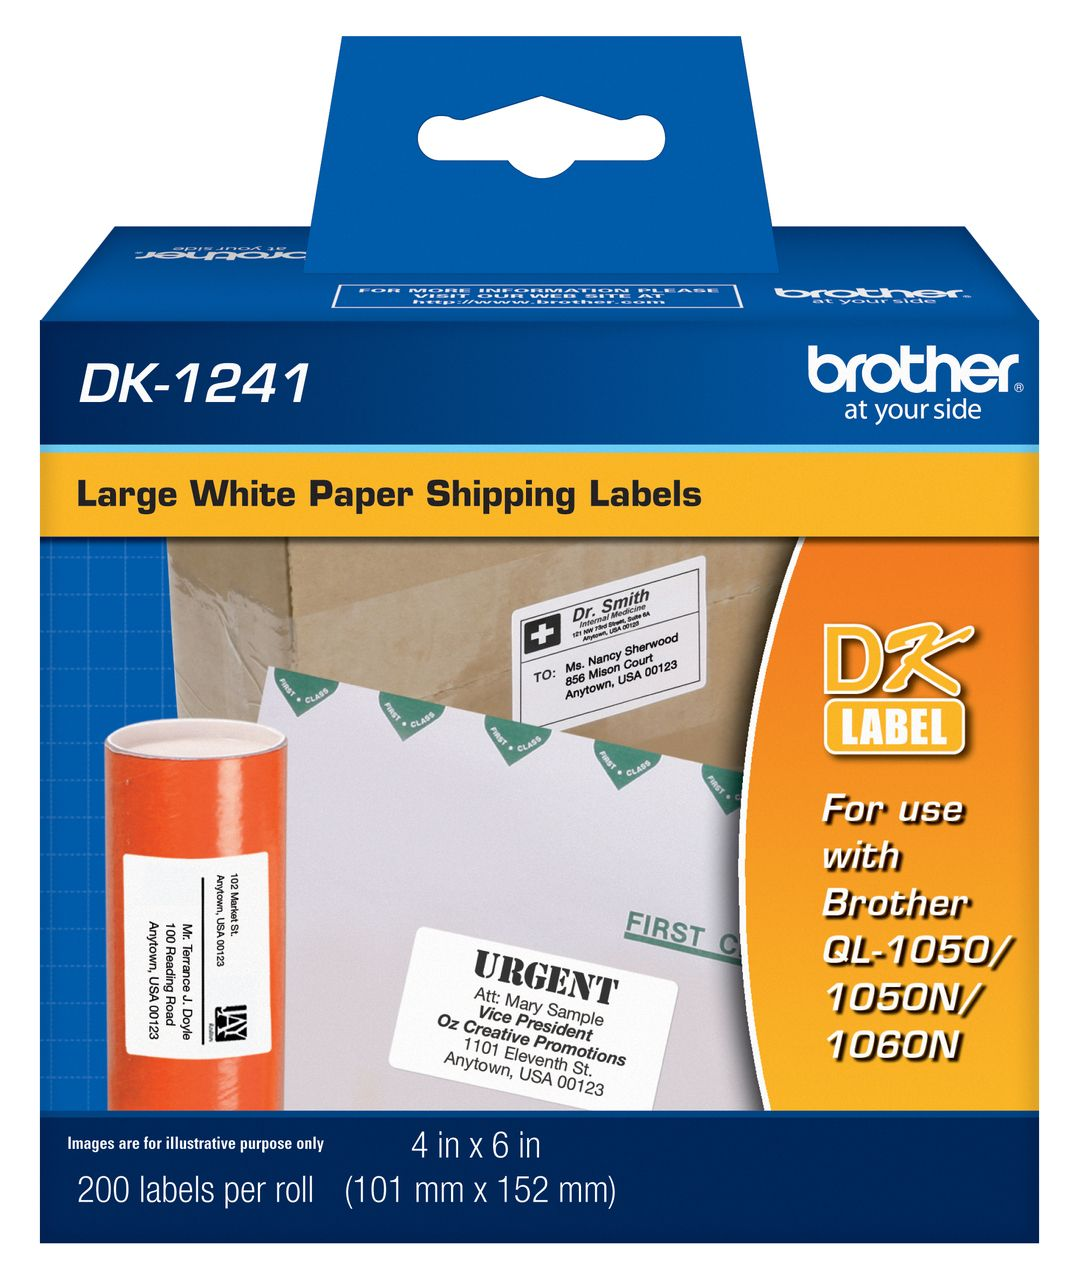 Brother DK1241 Large Shipping Labels How to make labels